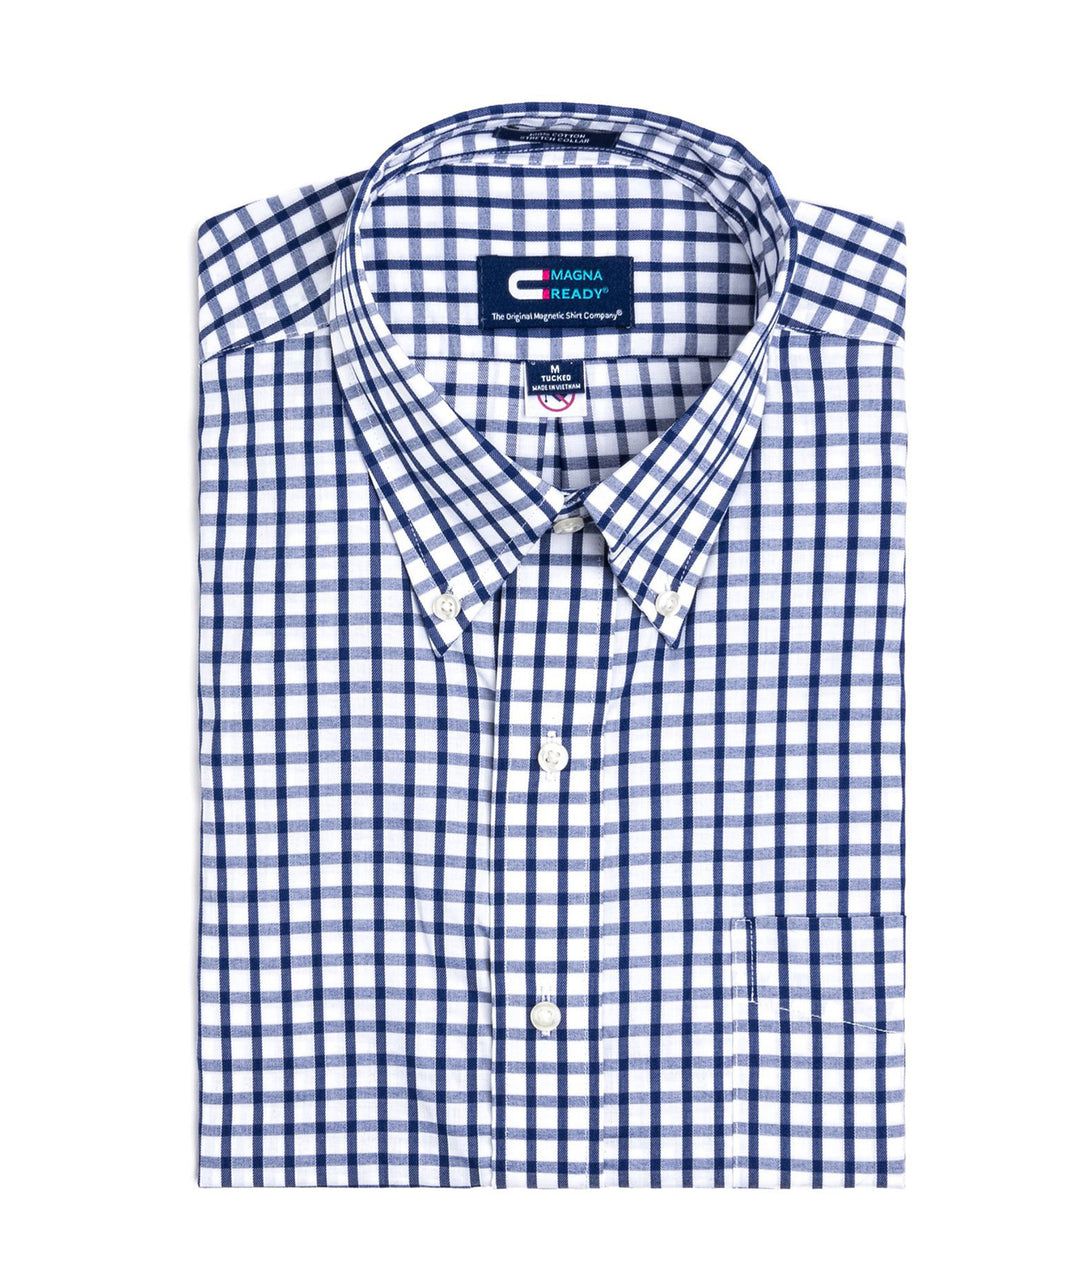 Navy and White Grid Check Long Sleeve Dress Shirt with Magnetic Closures | JUNIPERunltd